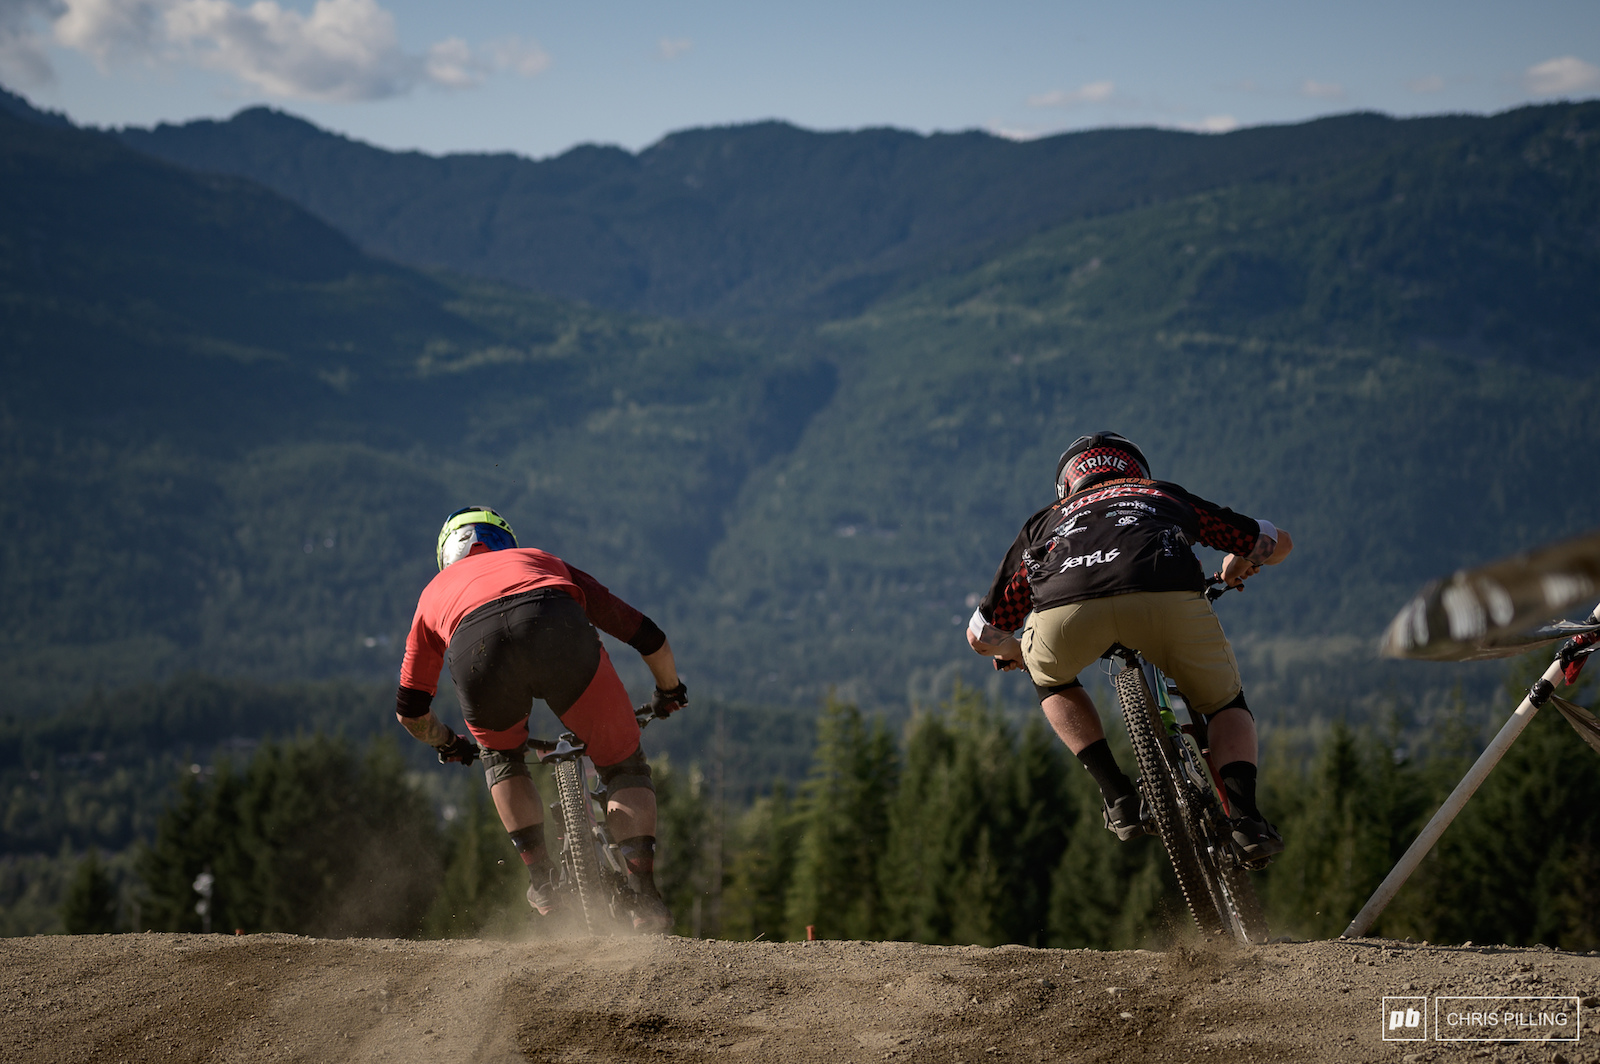 Dual Slalom is some of the fastest racing crankworx has to offer